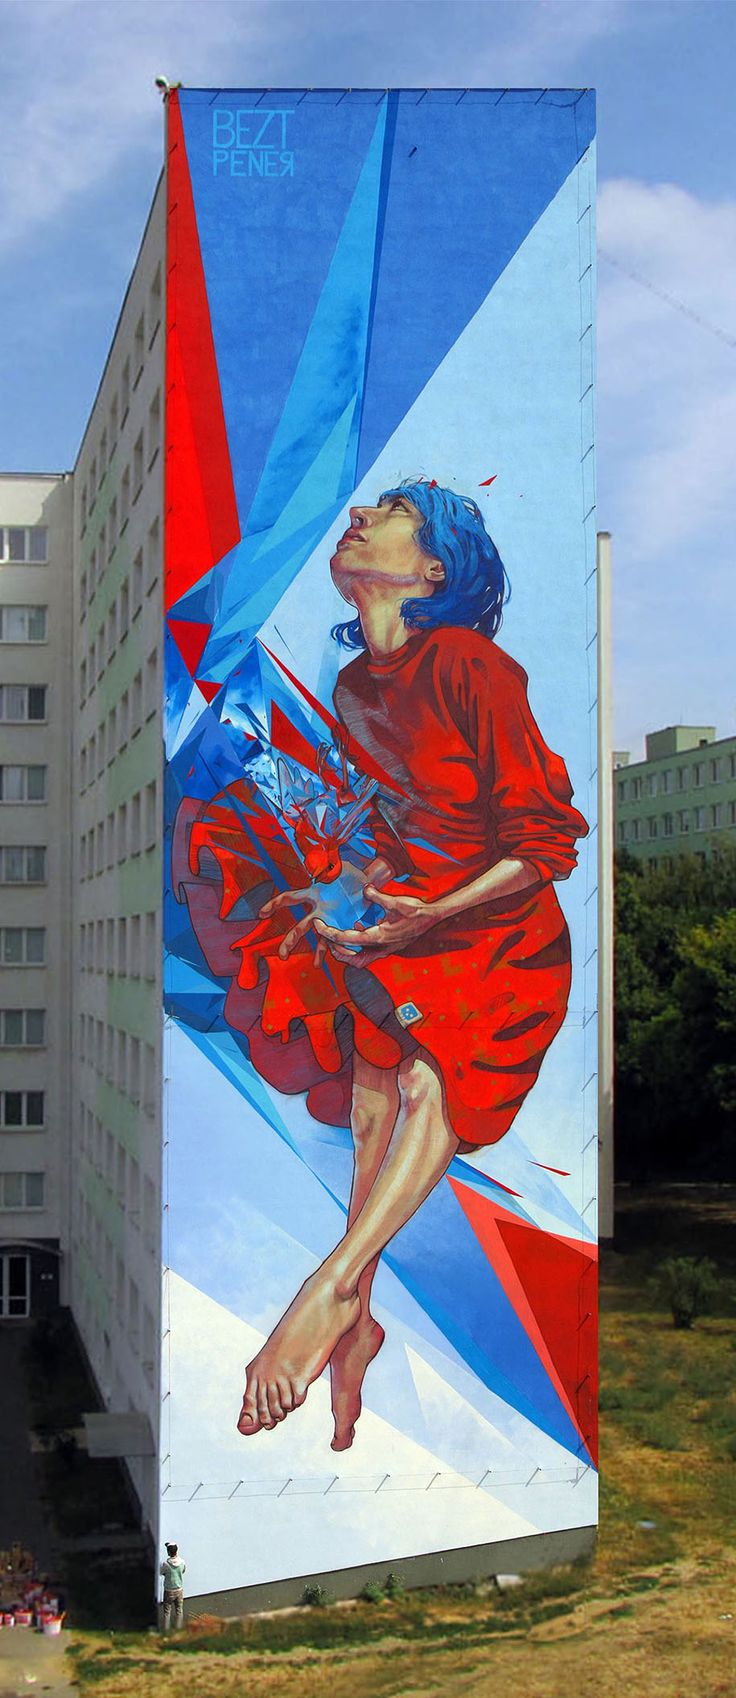 "Etam Cru Brightens City Walls With Epic Colorful Street Art Murals ""The Healer"""